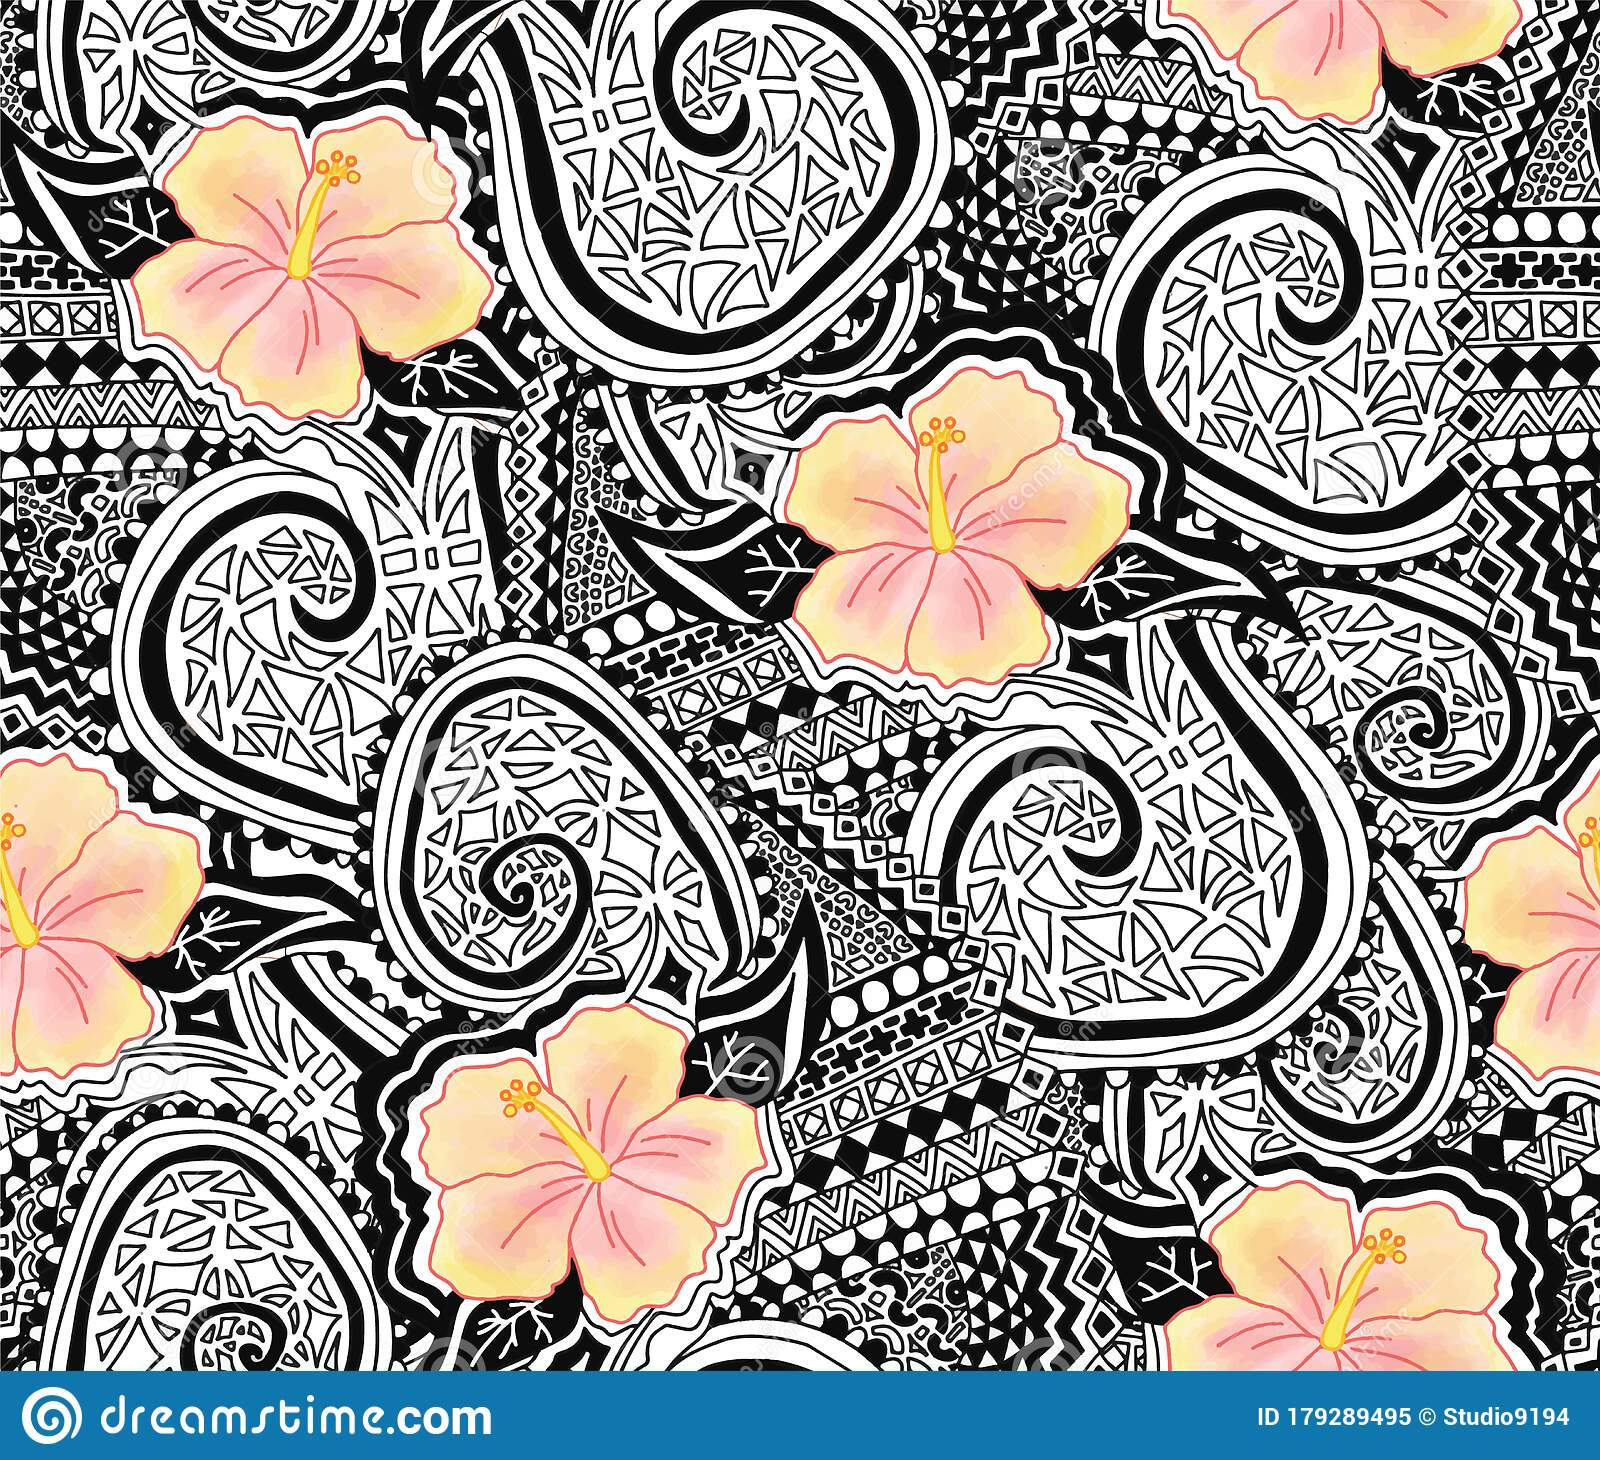 Hibiscus Tribal Stock Illustrations 1 062 Hibiscus Tribal Stock Illustrations Vectors Clipart Dreamstime,Middle Class Home Furniture Design Hall